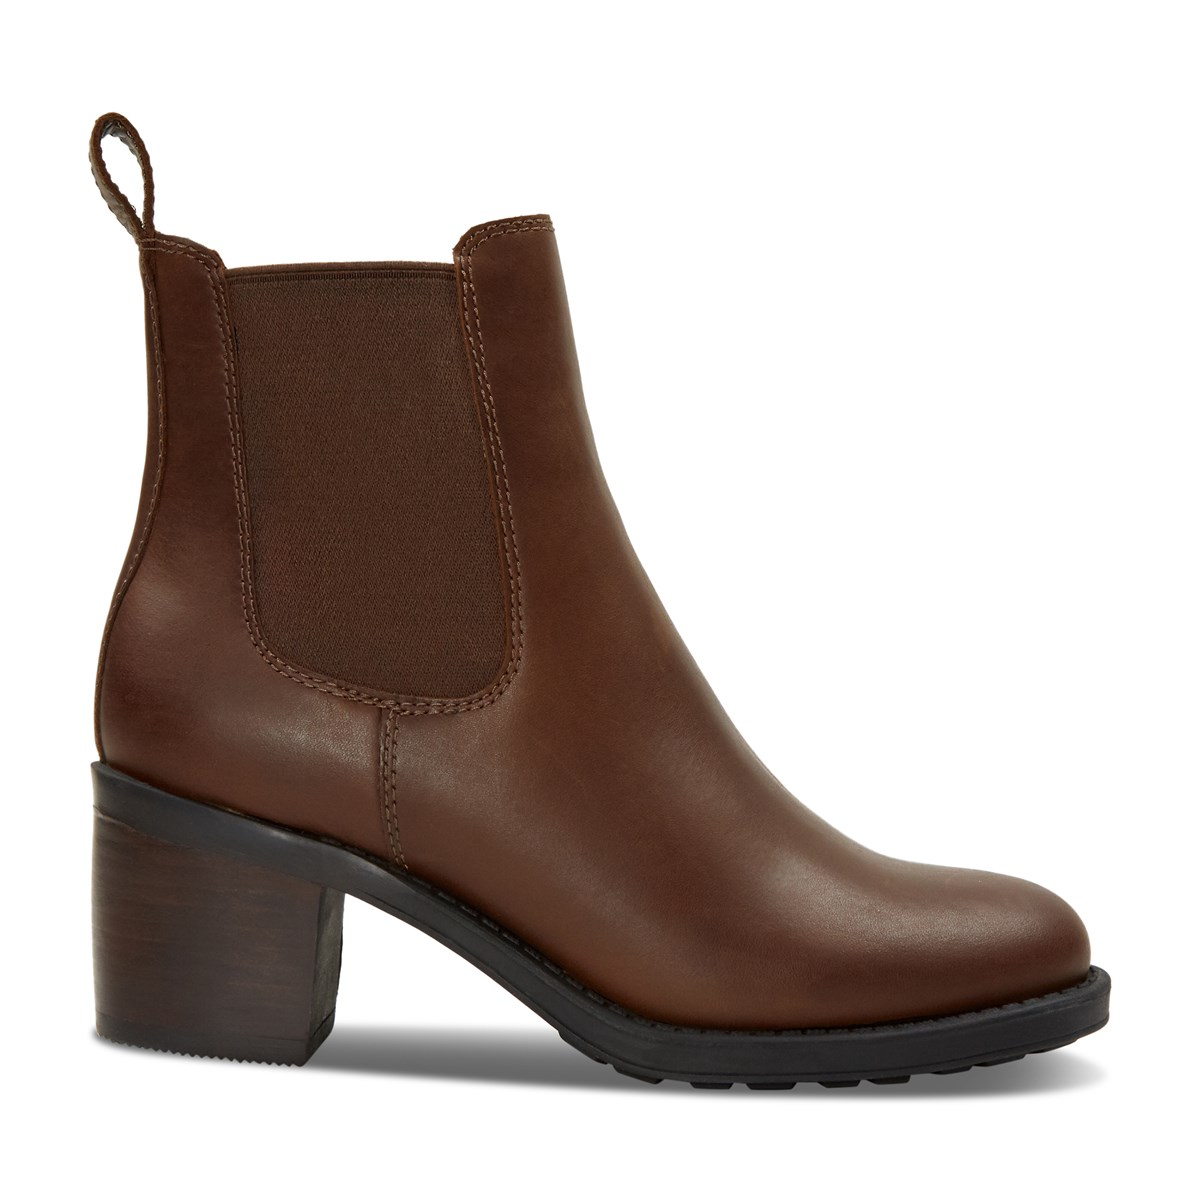 Women's Fargo Ankle Boots in Brown